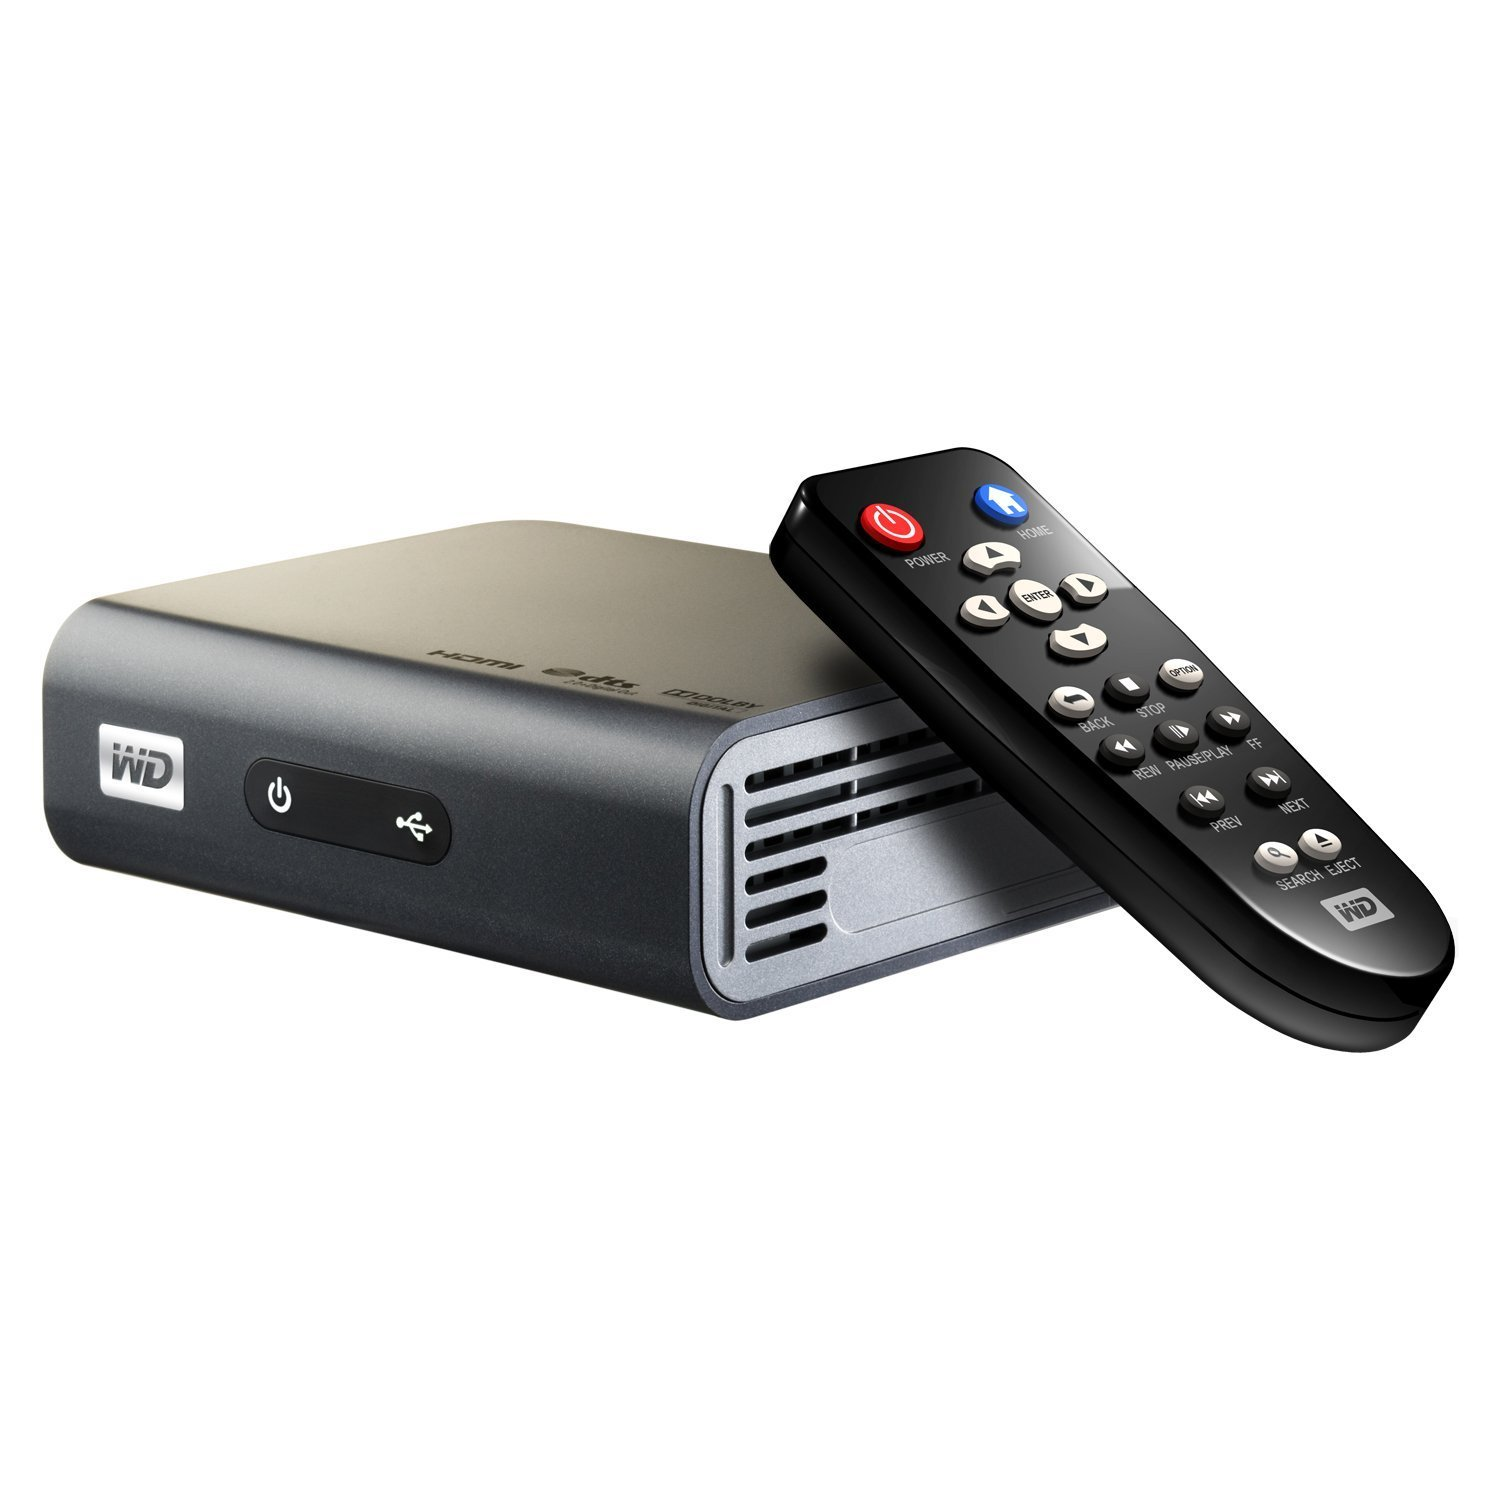 Online Shopping: Western Digital WD TV Live Plus 1080p HD Media Player